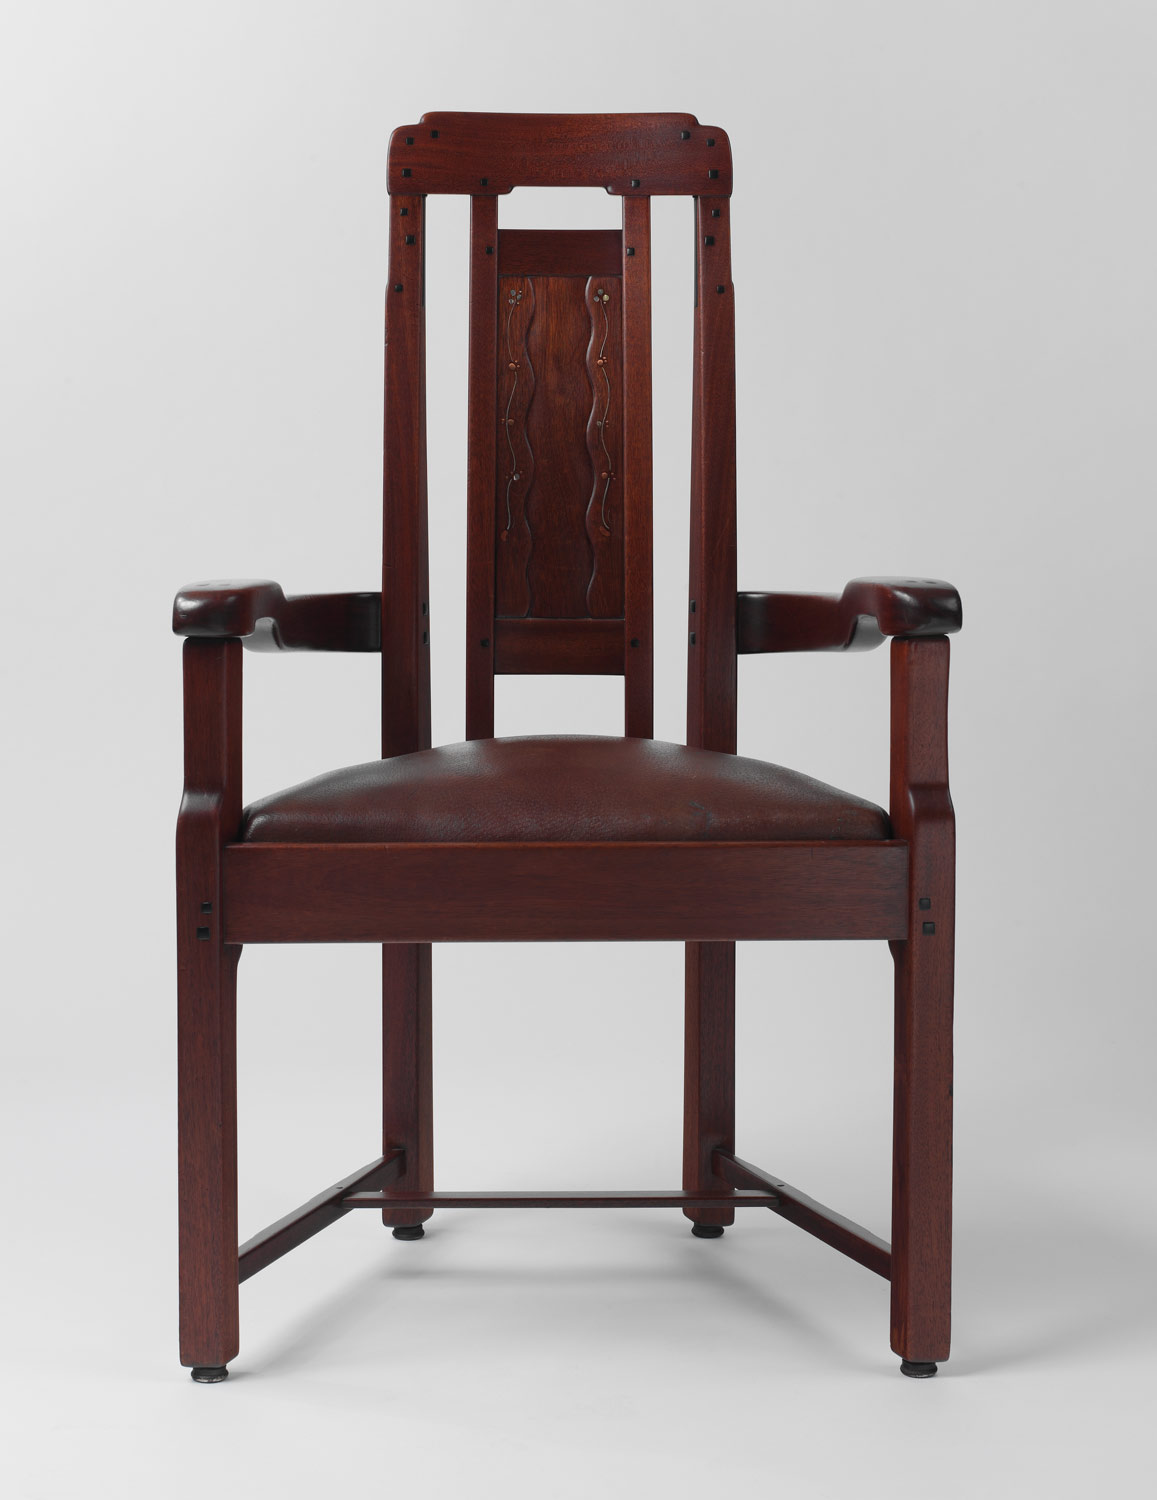 Arts and crafts furniture chair - Armchair